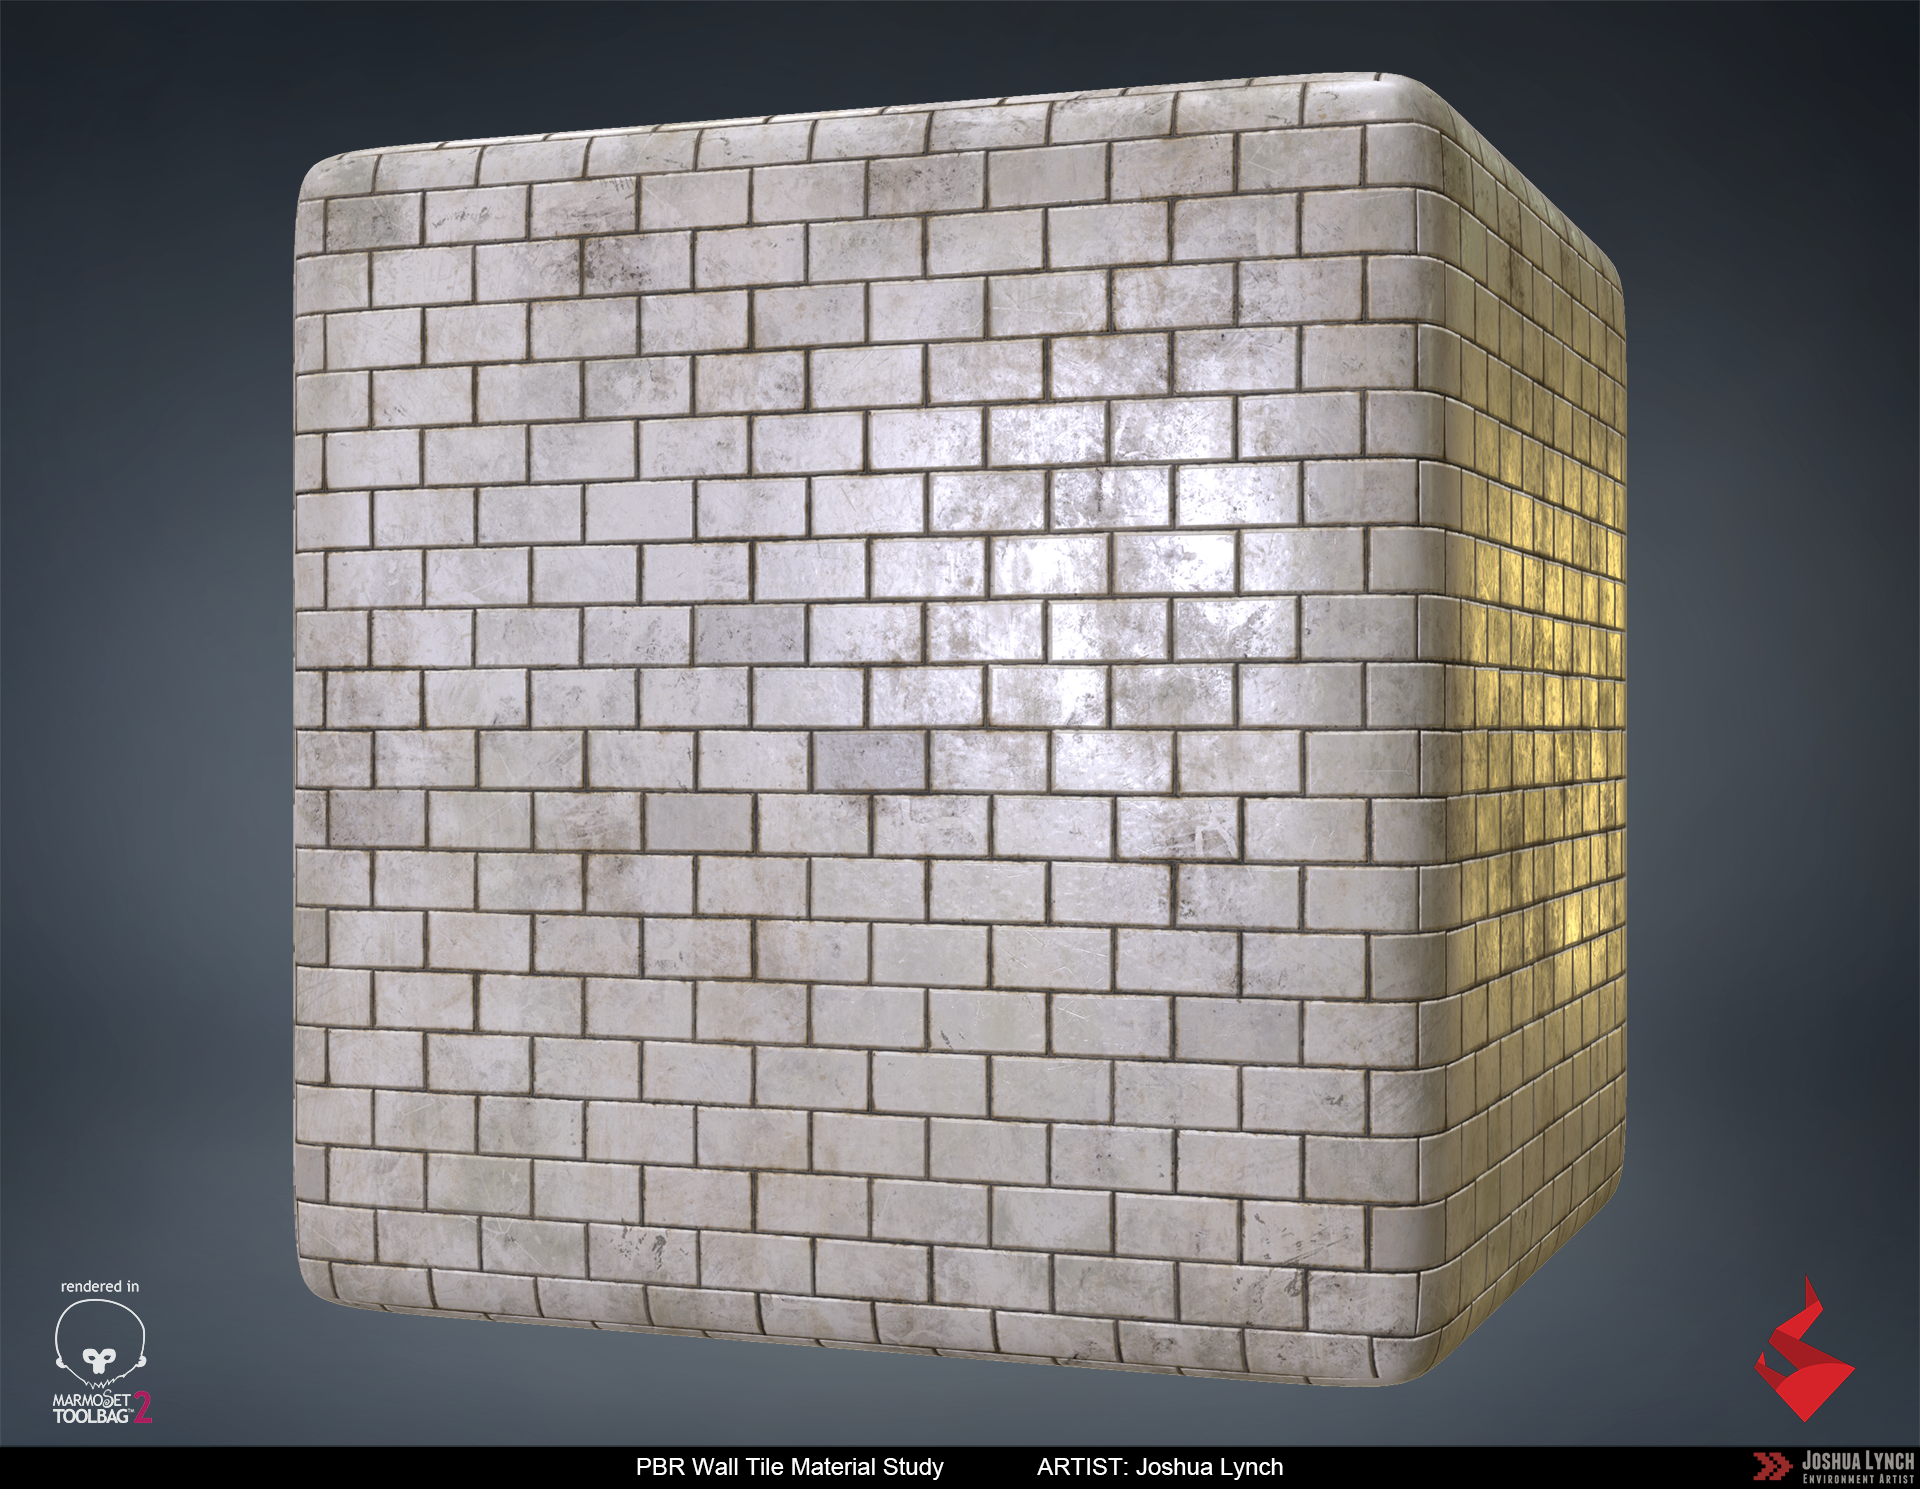 Subway_Wall_Tile_Cube_Layout_Comp_Josh_Lynch.png